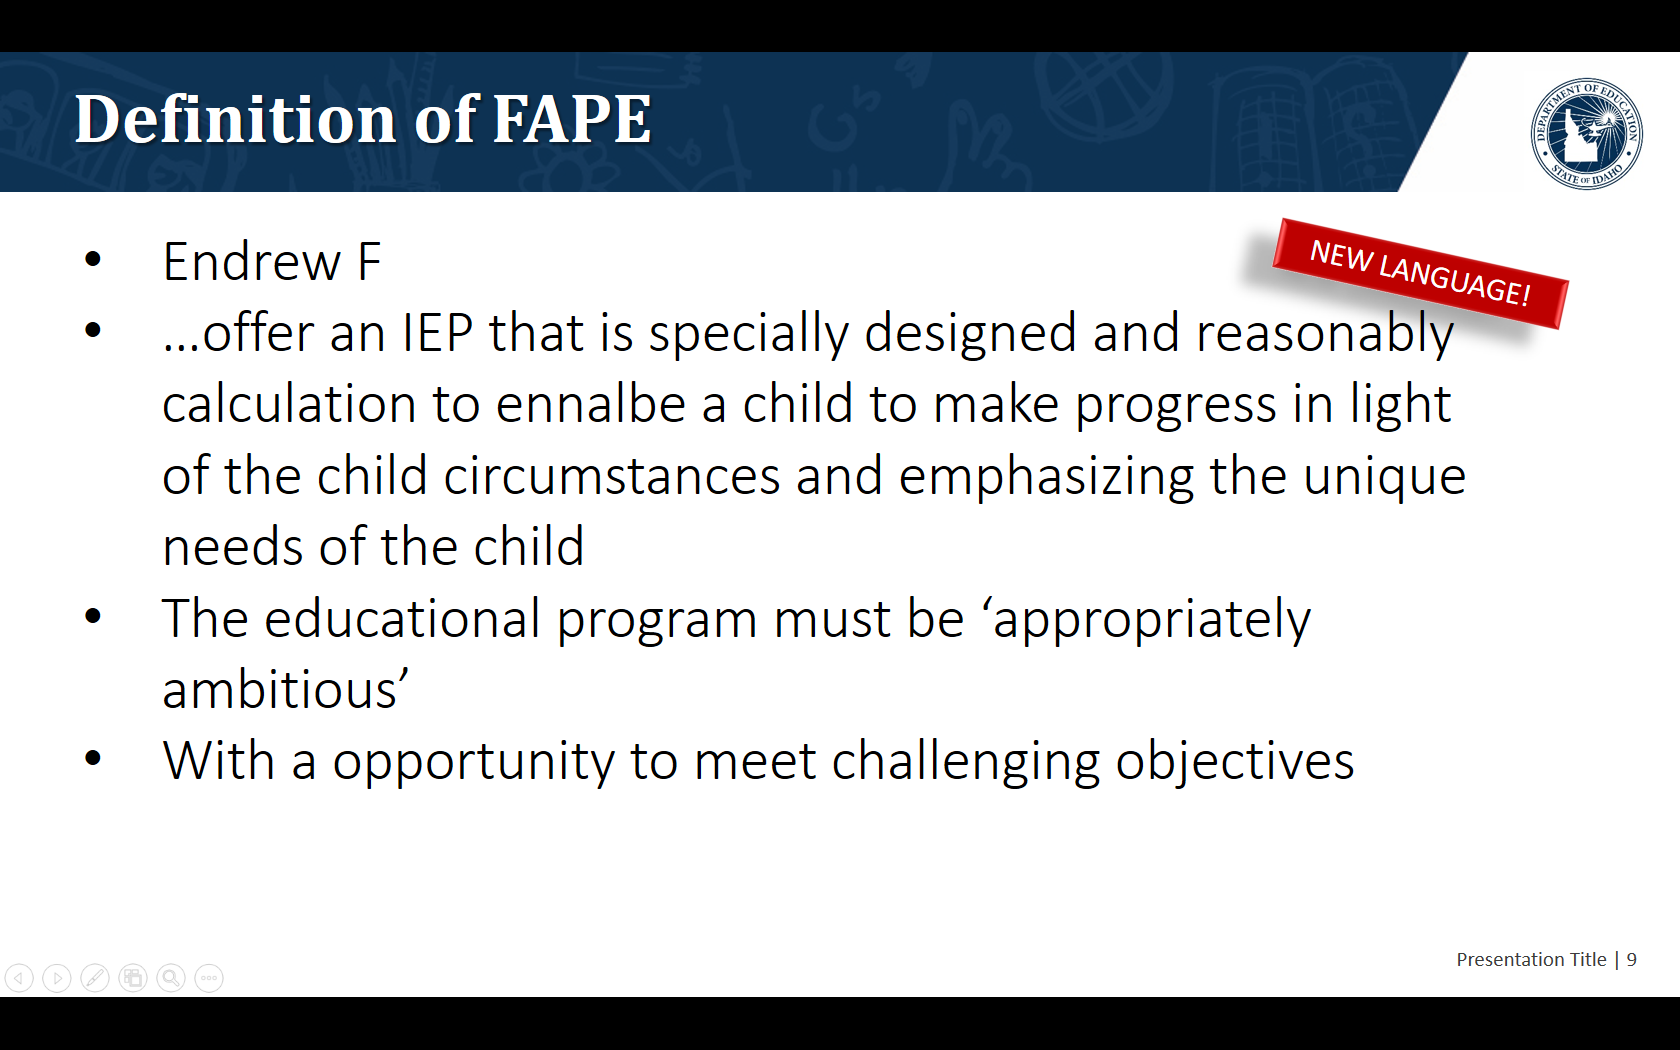 …offer an IEP that is specially designed and reasonably calculation to ennalbe a child to make progress in light of the child circumstances and emphasizing the unique needs of the child. The educational program must be 'appropriately ambitious'. With a opportunity to meet challenging objectives